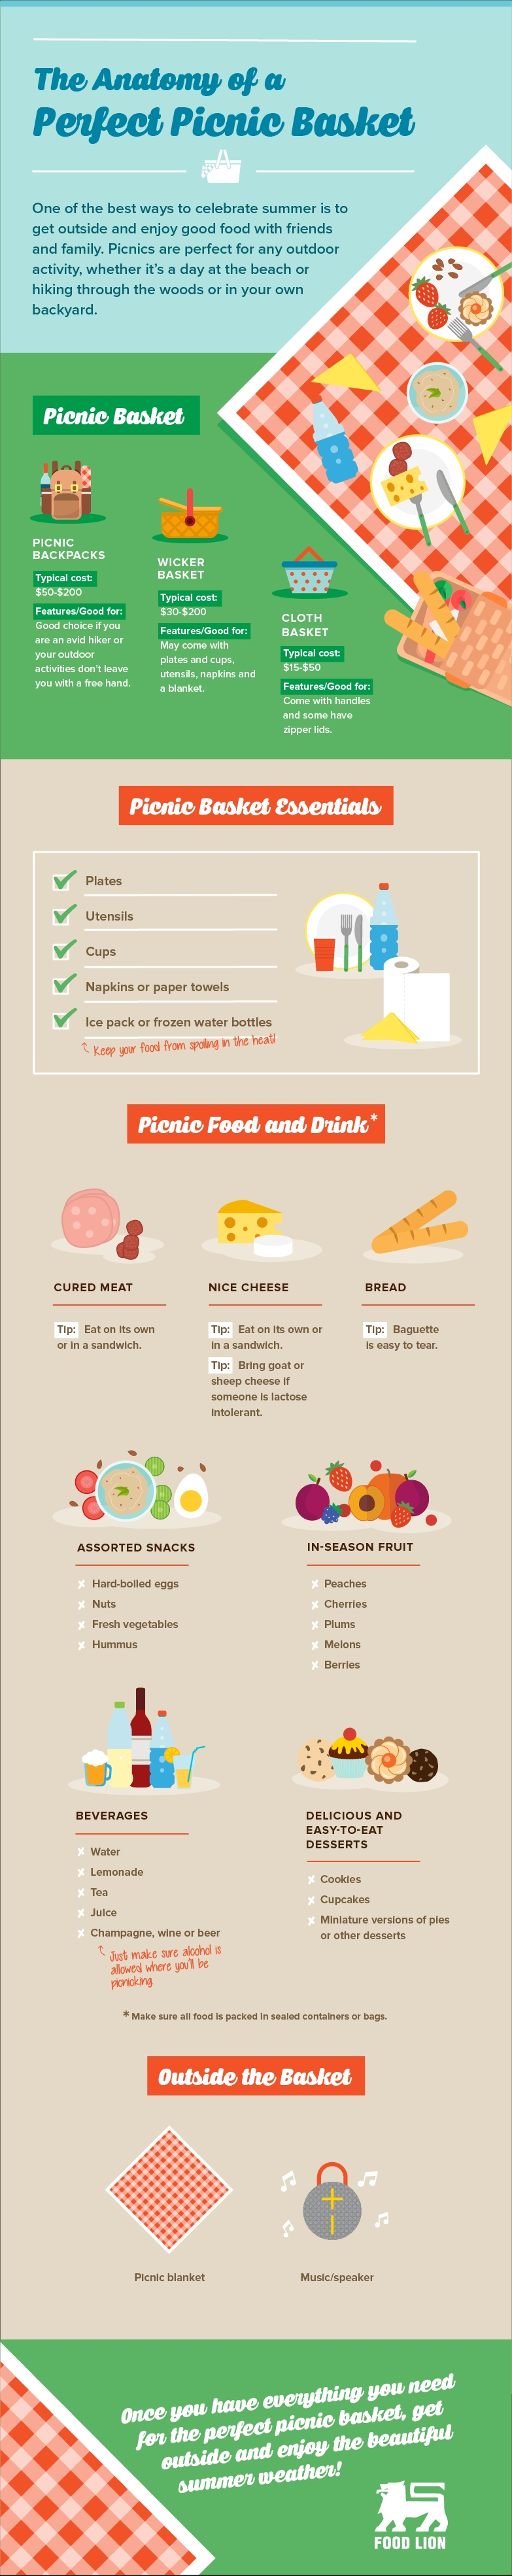 How to Create the Quintessential Picnic Basket - Infographic